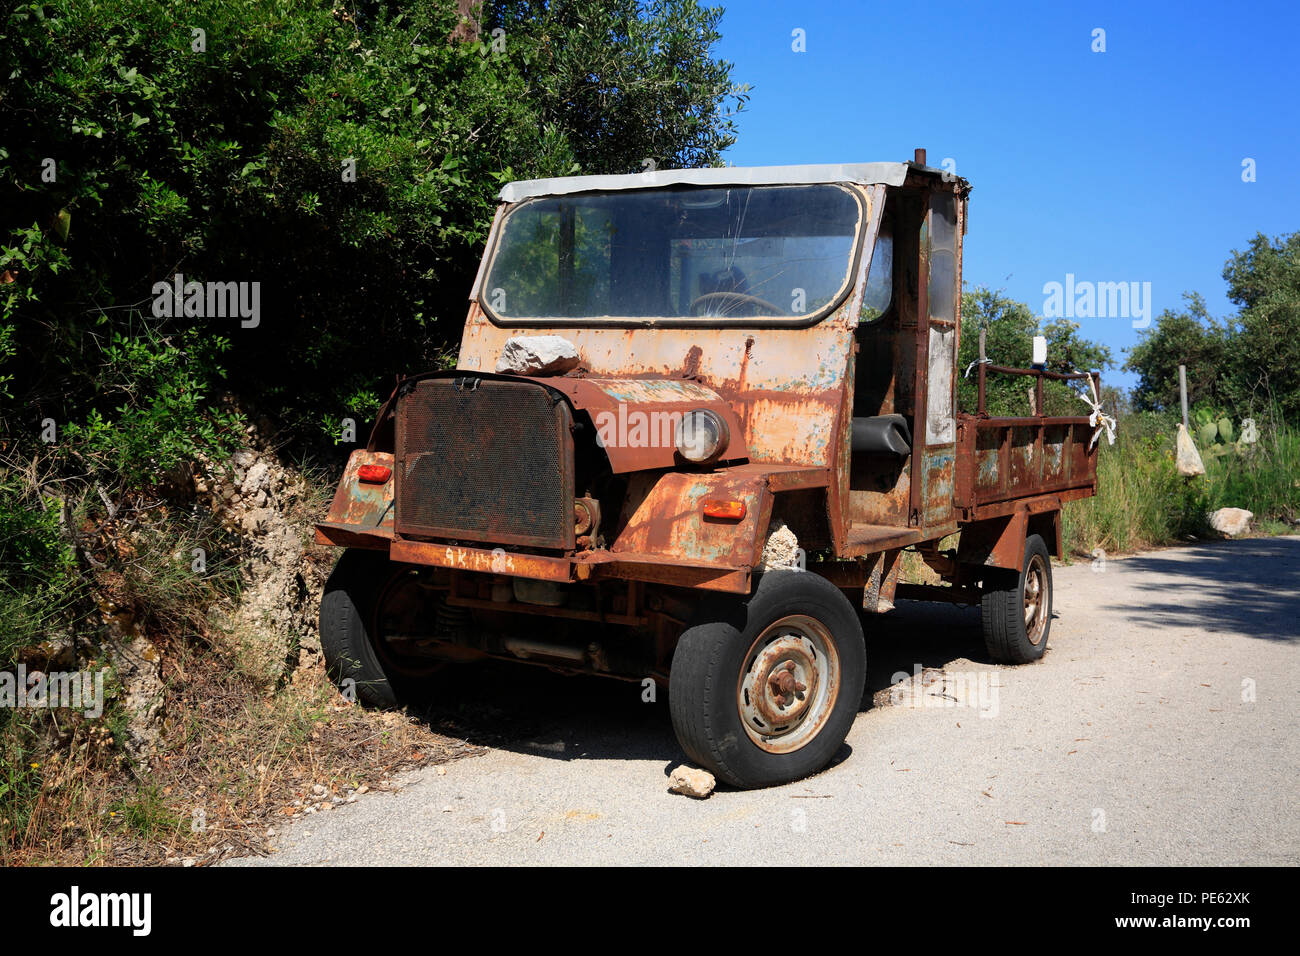 Old olive transporter, Corfu, Greece, Europe - Stock Image